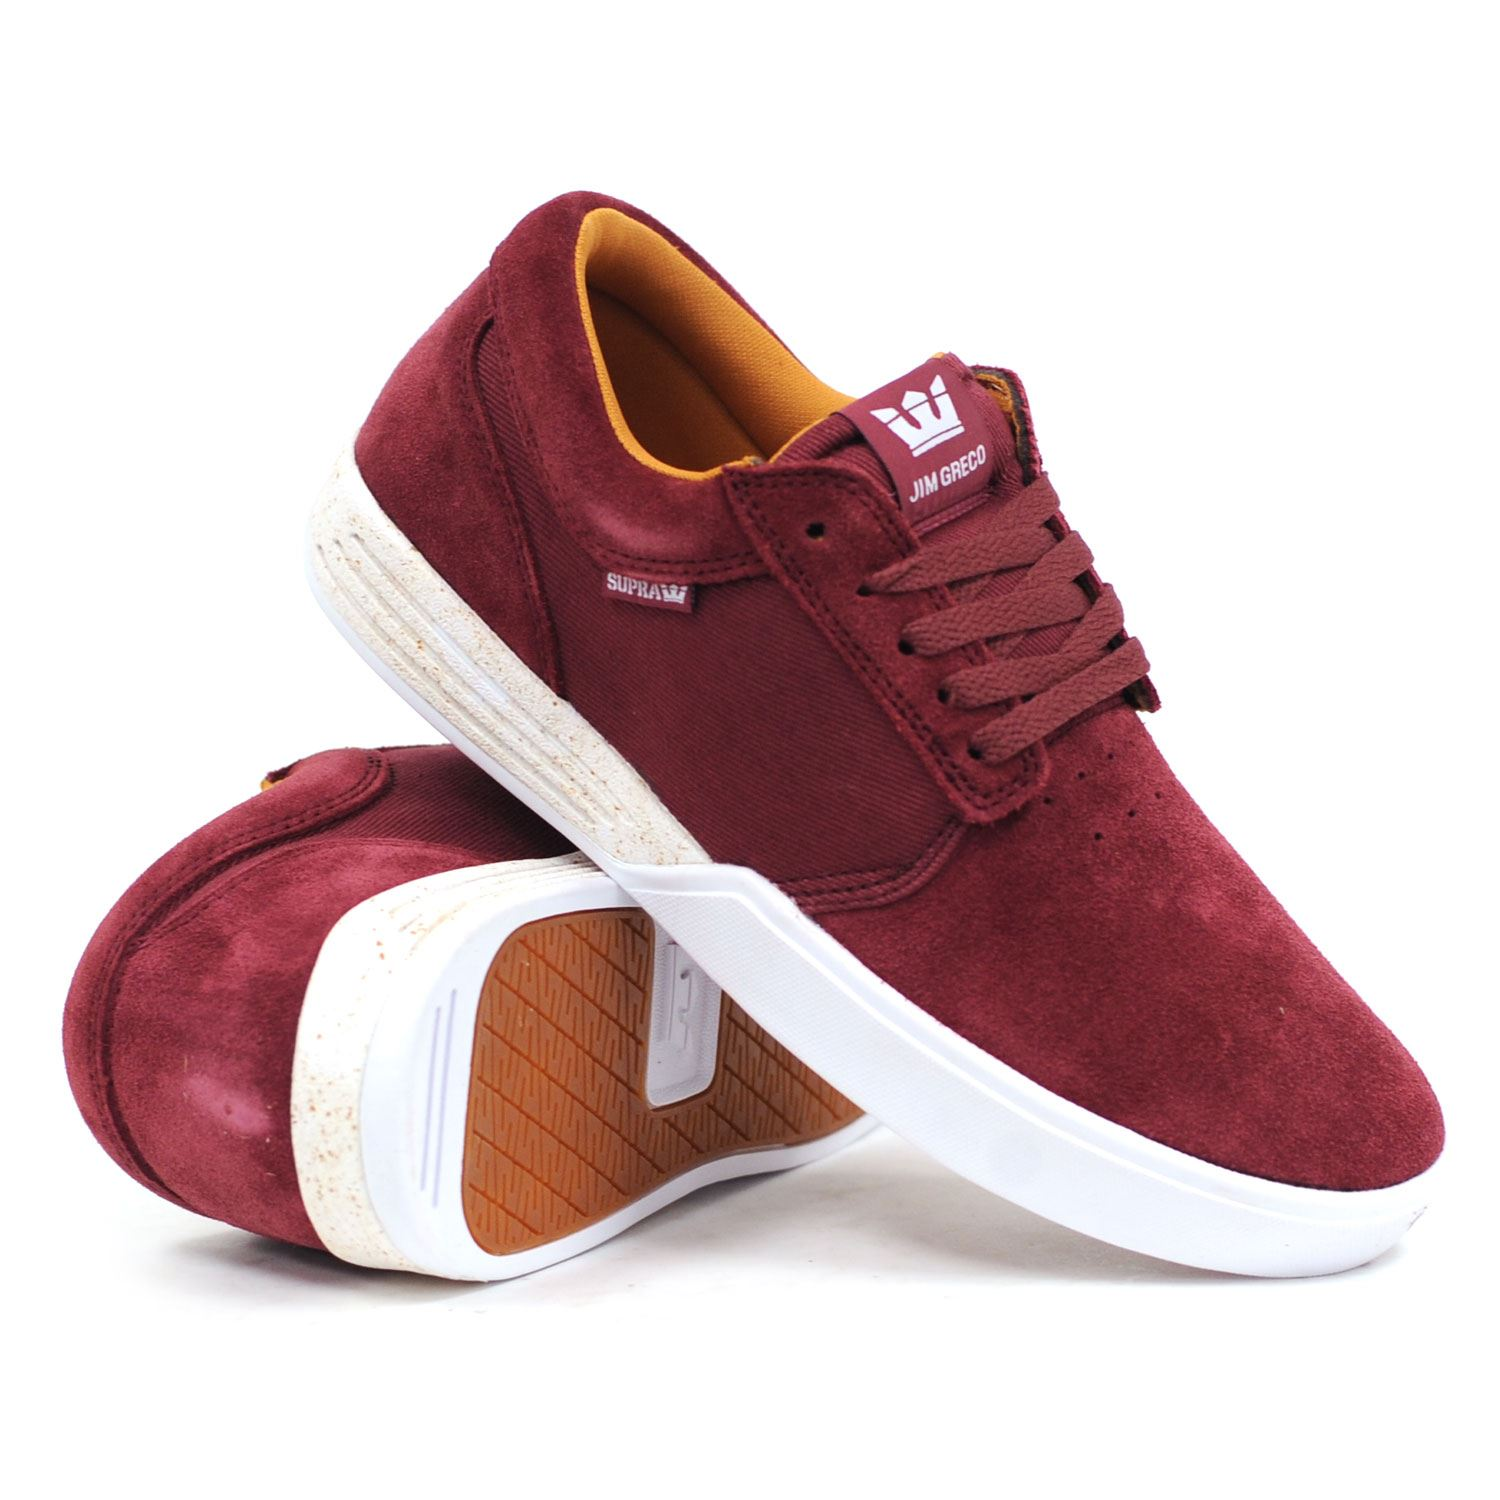 supra shoes buy india chicago criminal and civil